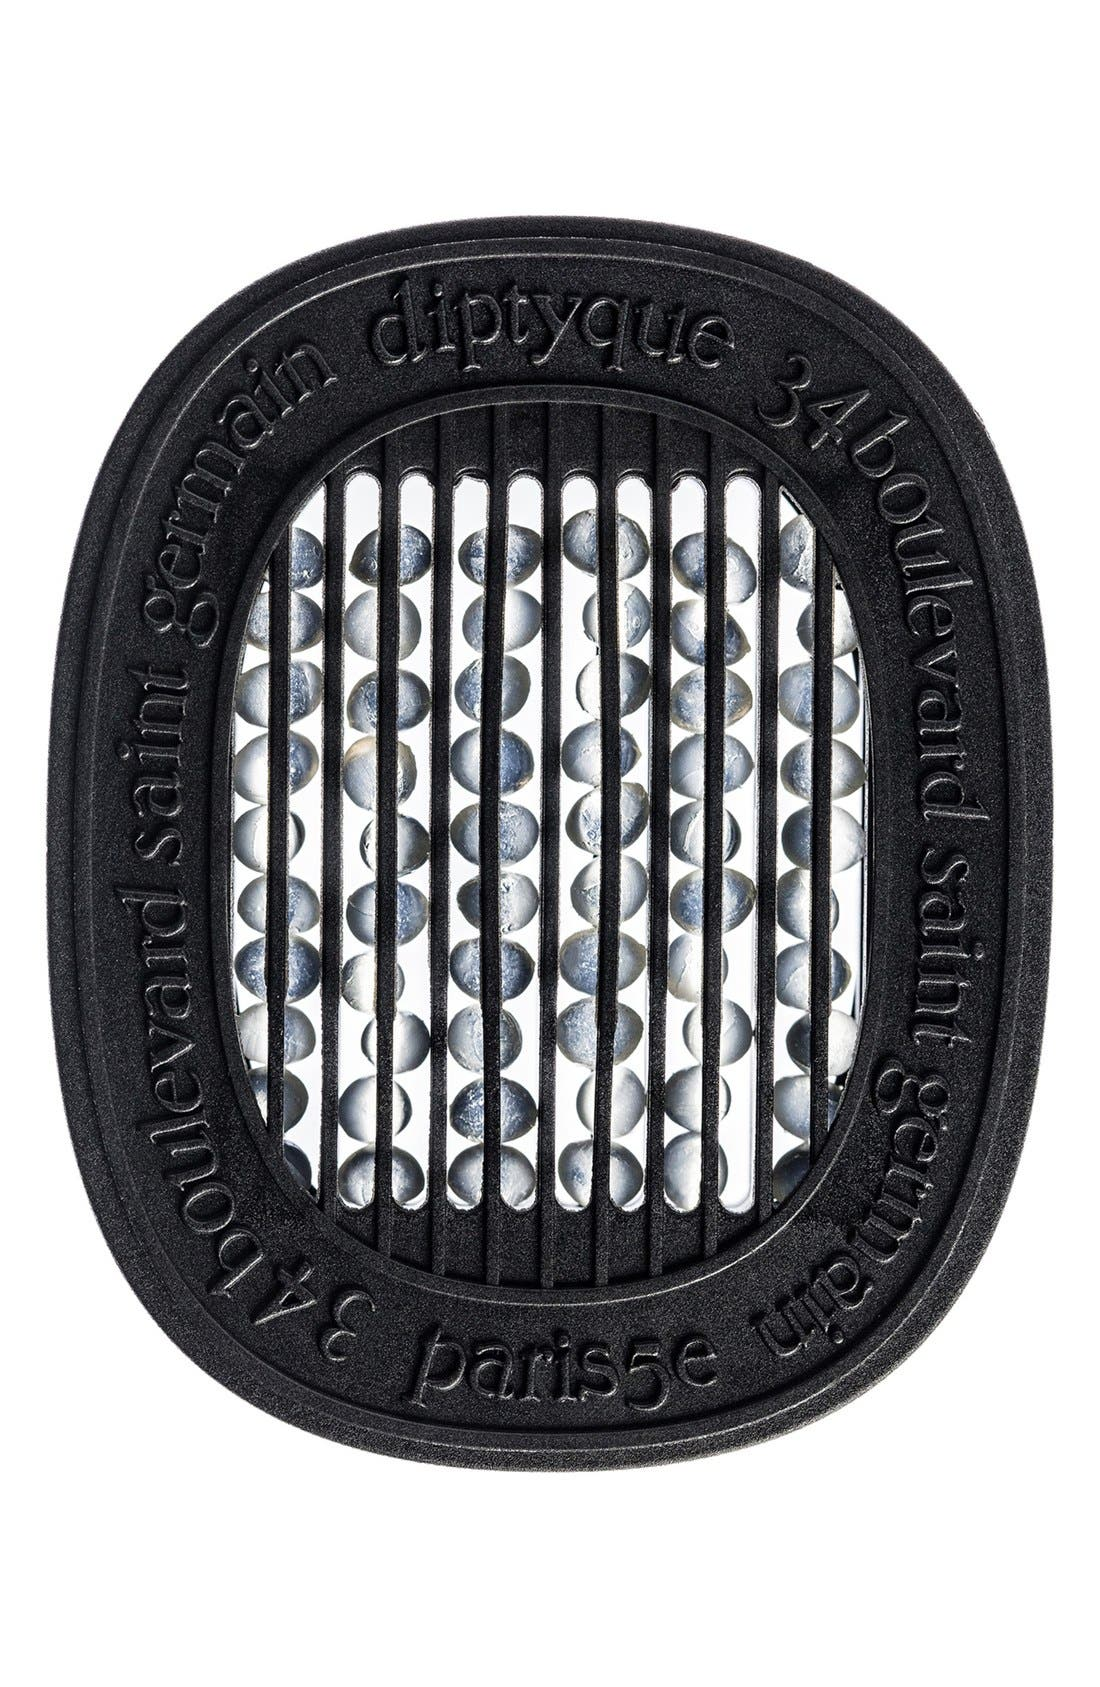 Main Image - diptyque 'Roses' Electric Diffuser Refill Capsule